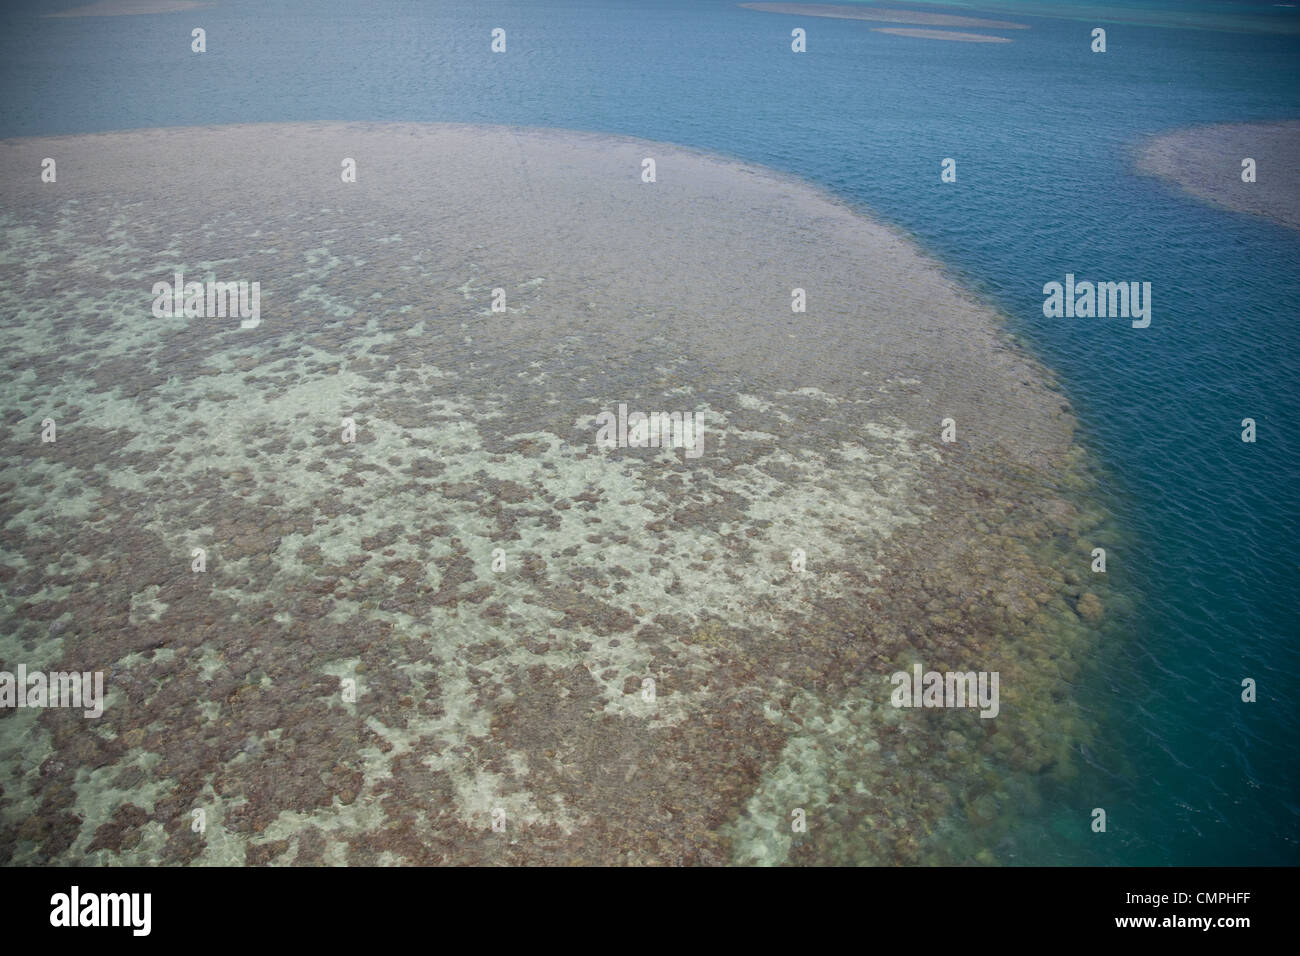 Coral atoll off Kaneohe Hawaii - Stock Image